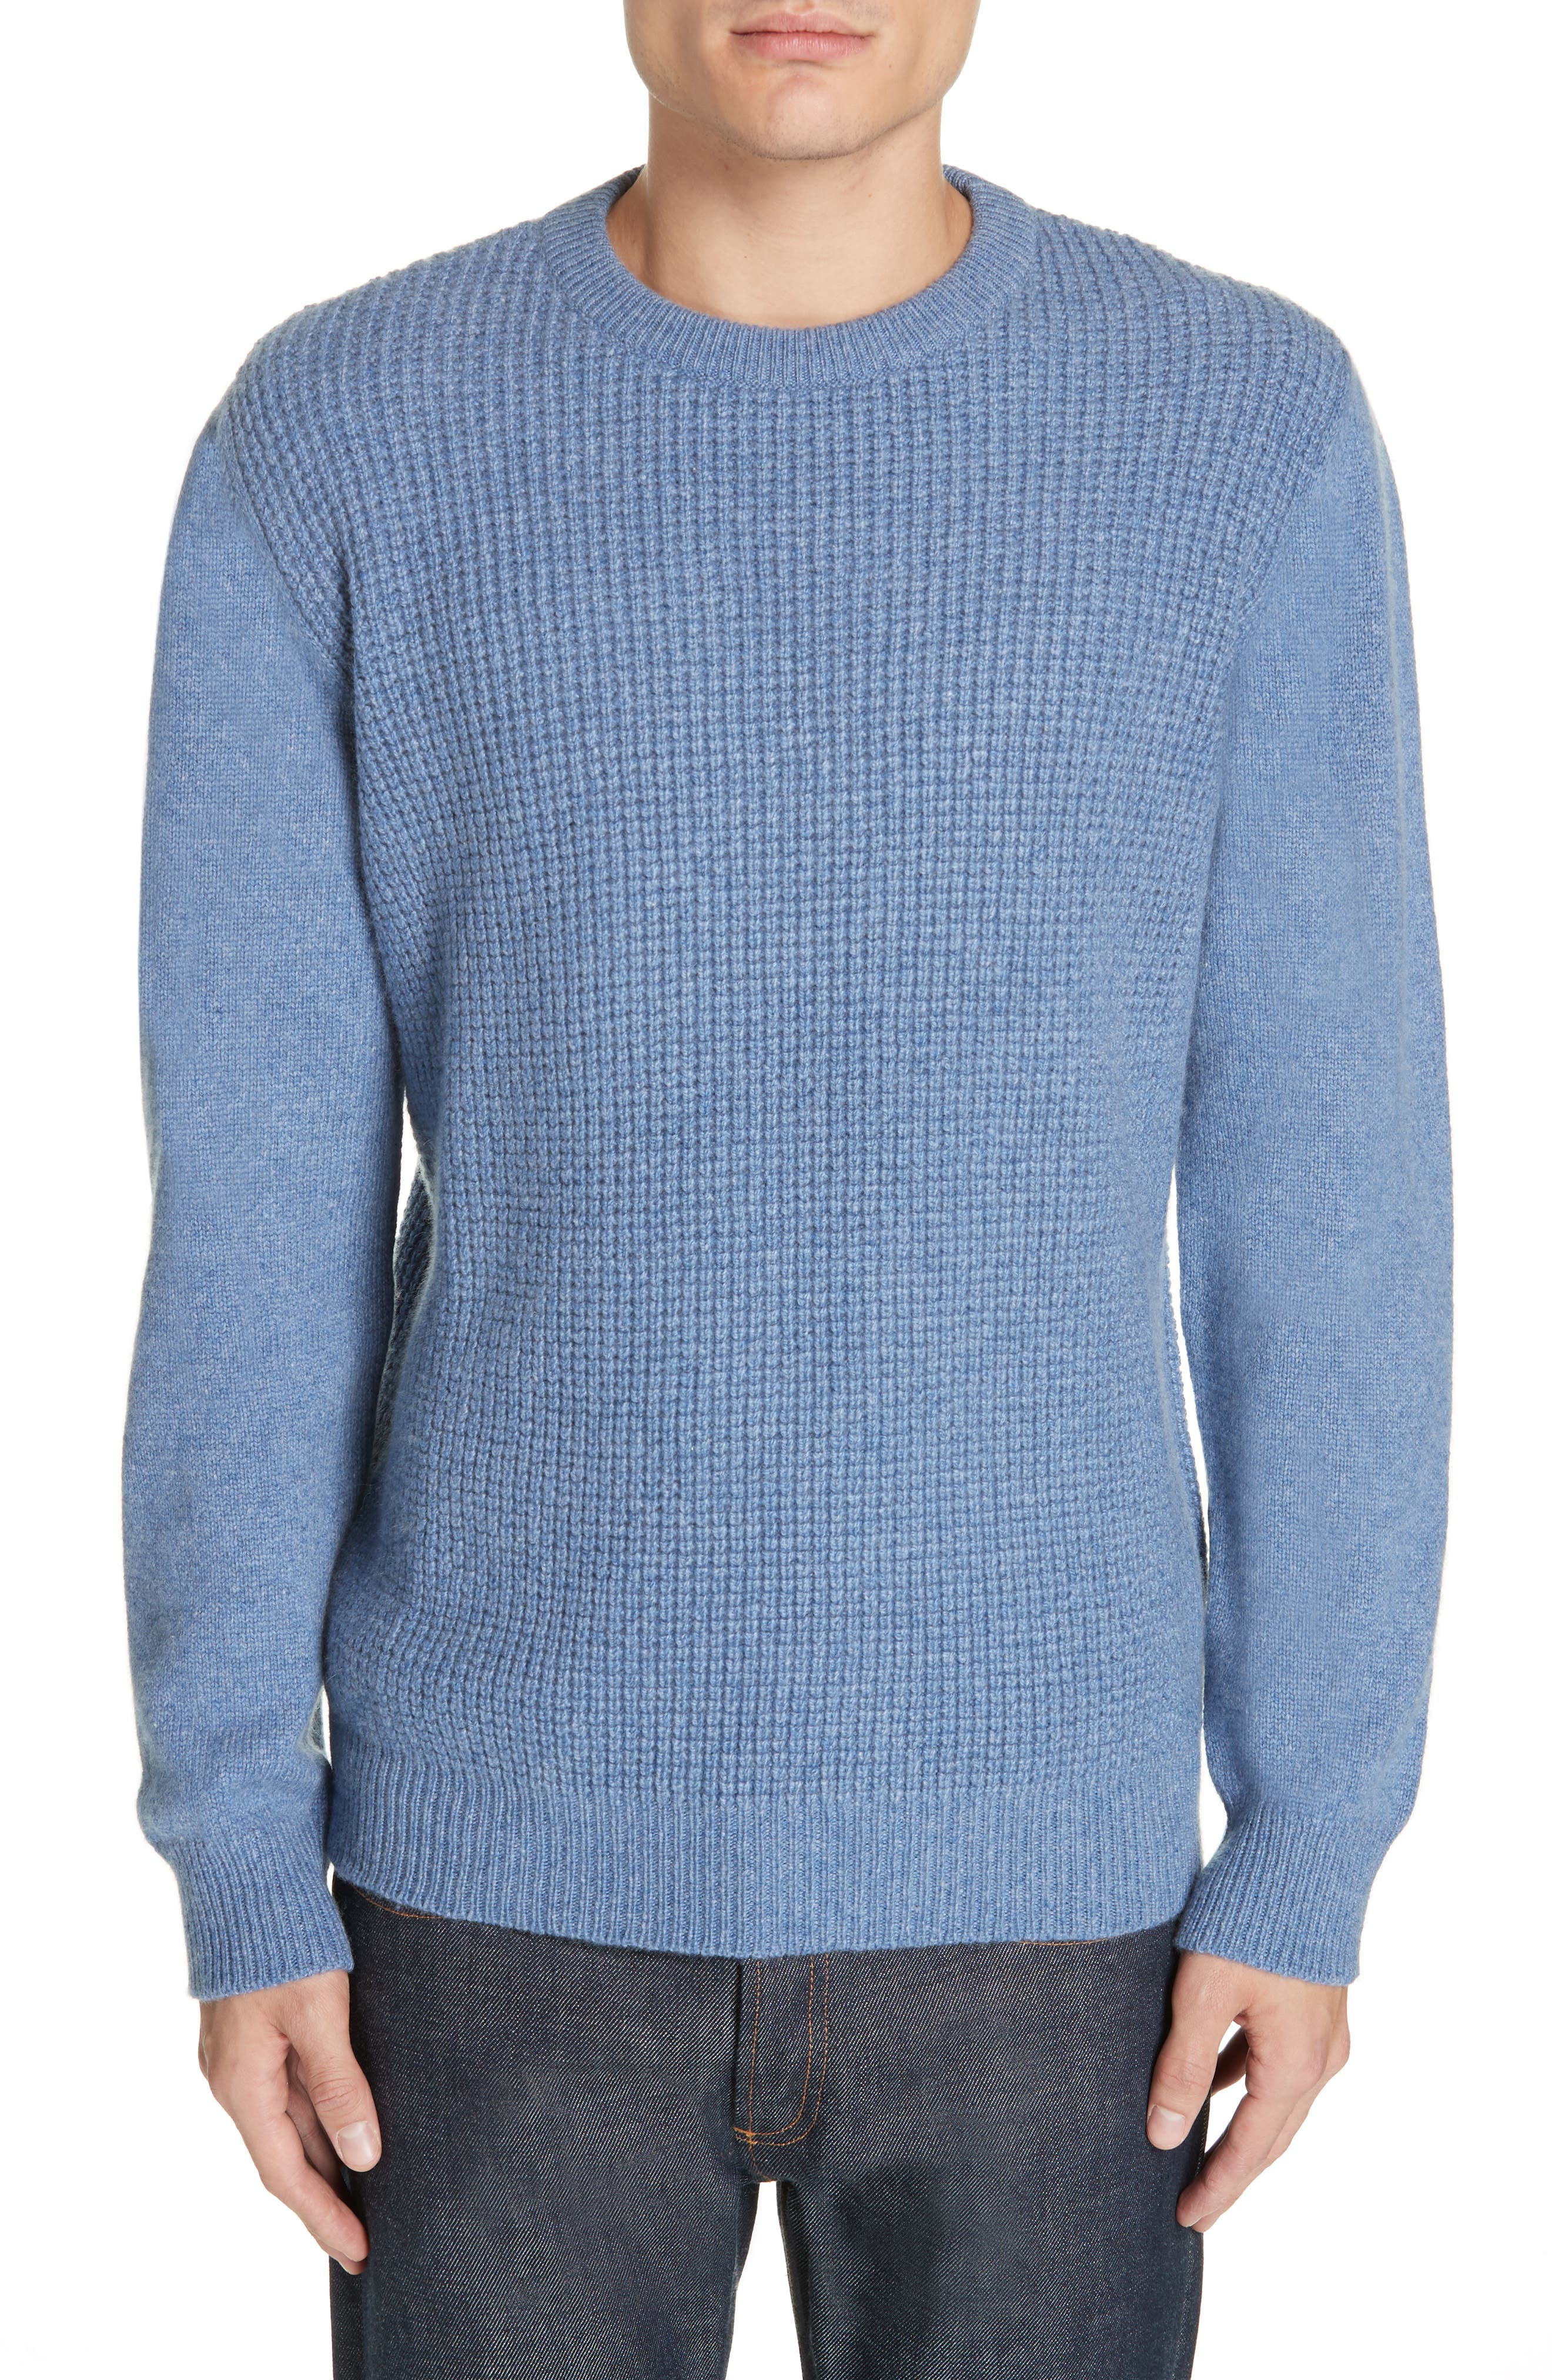 EIDOS Waffle Knit Cashmere Crewneck Sweater in Light Blue